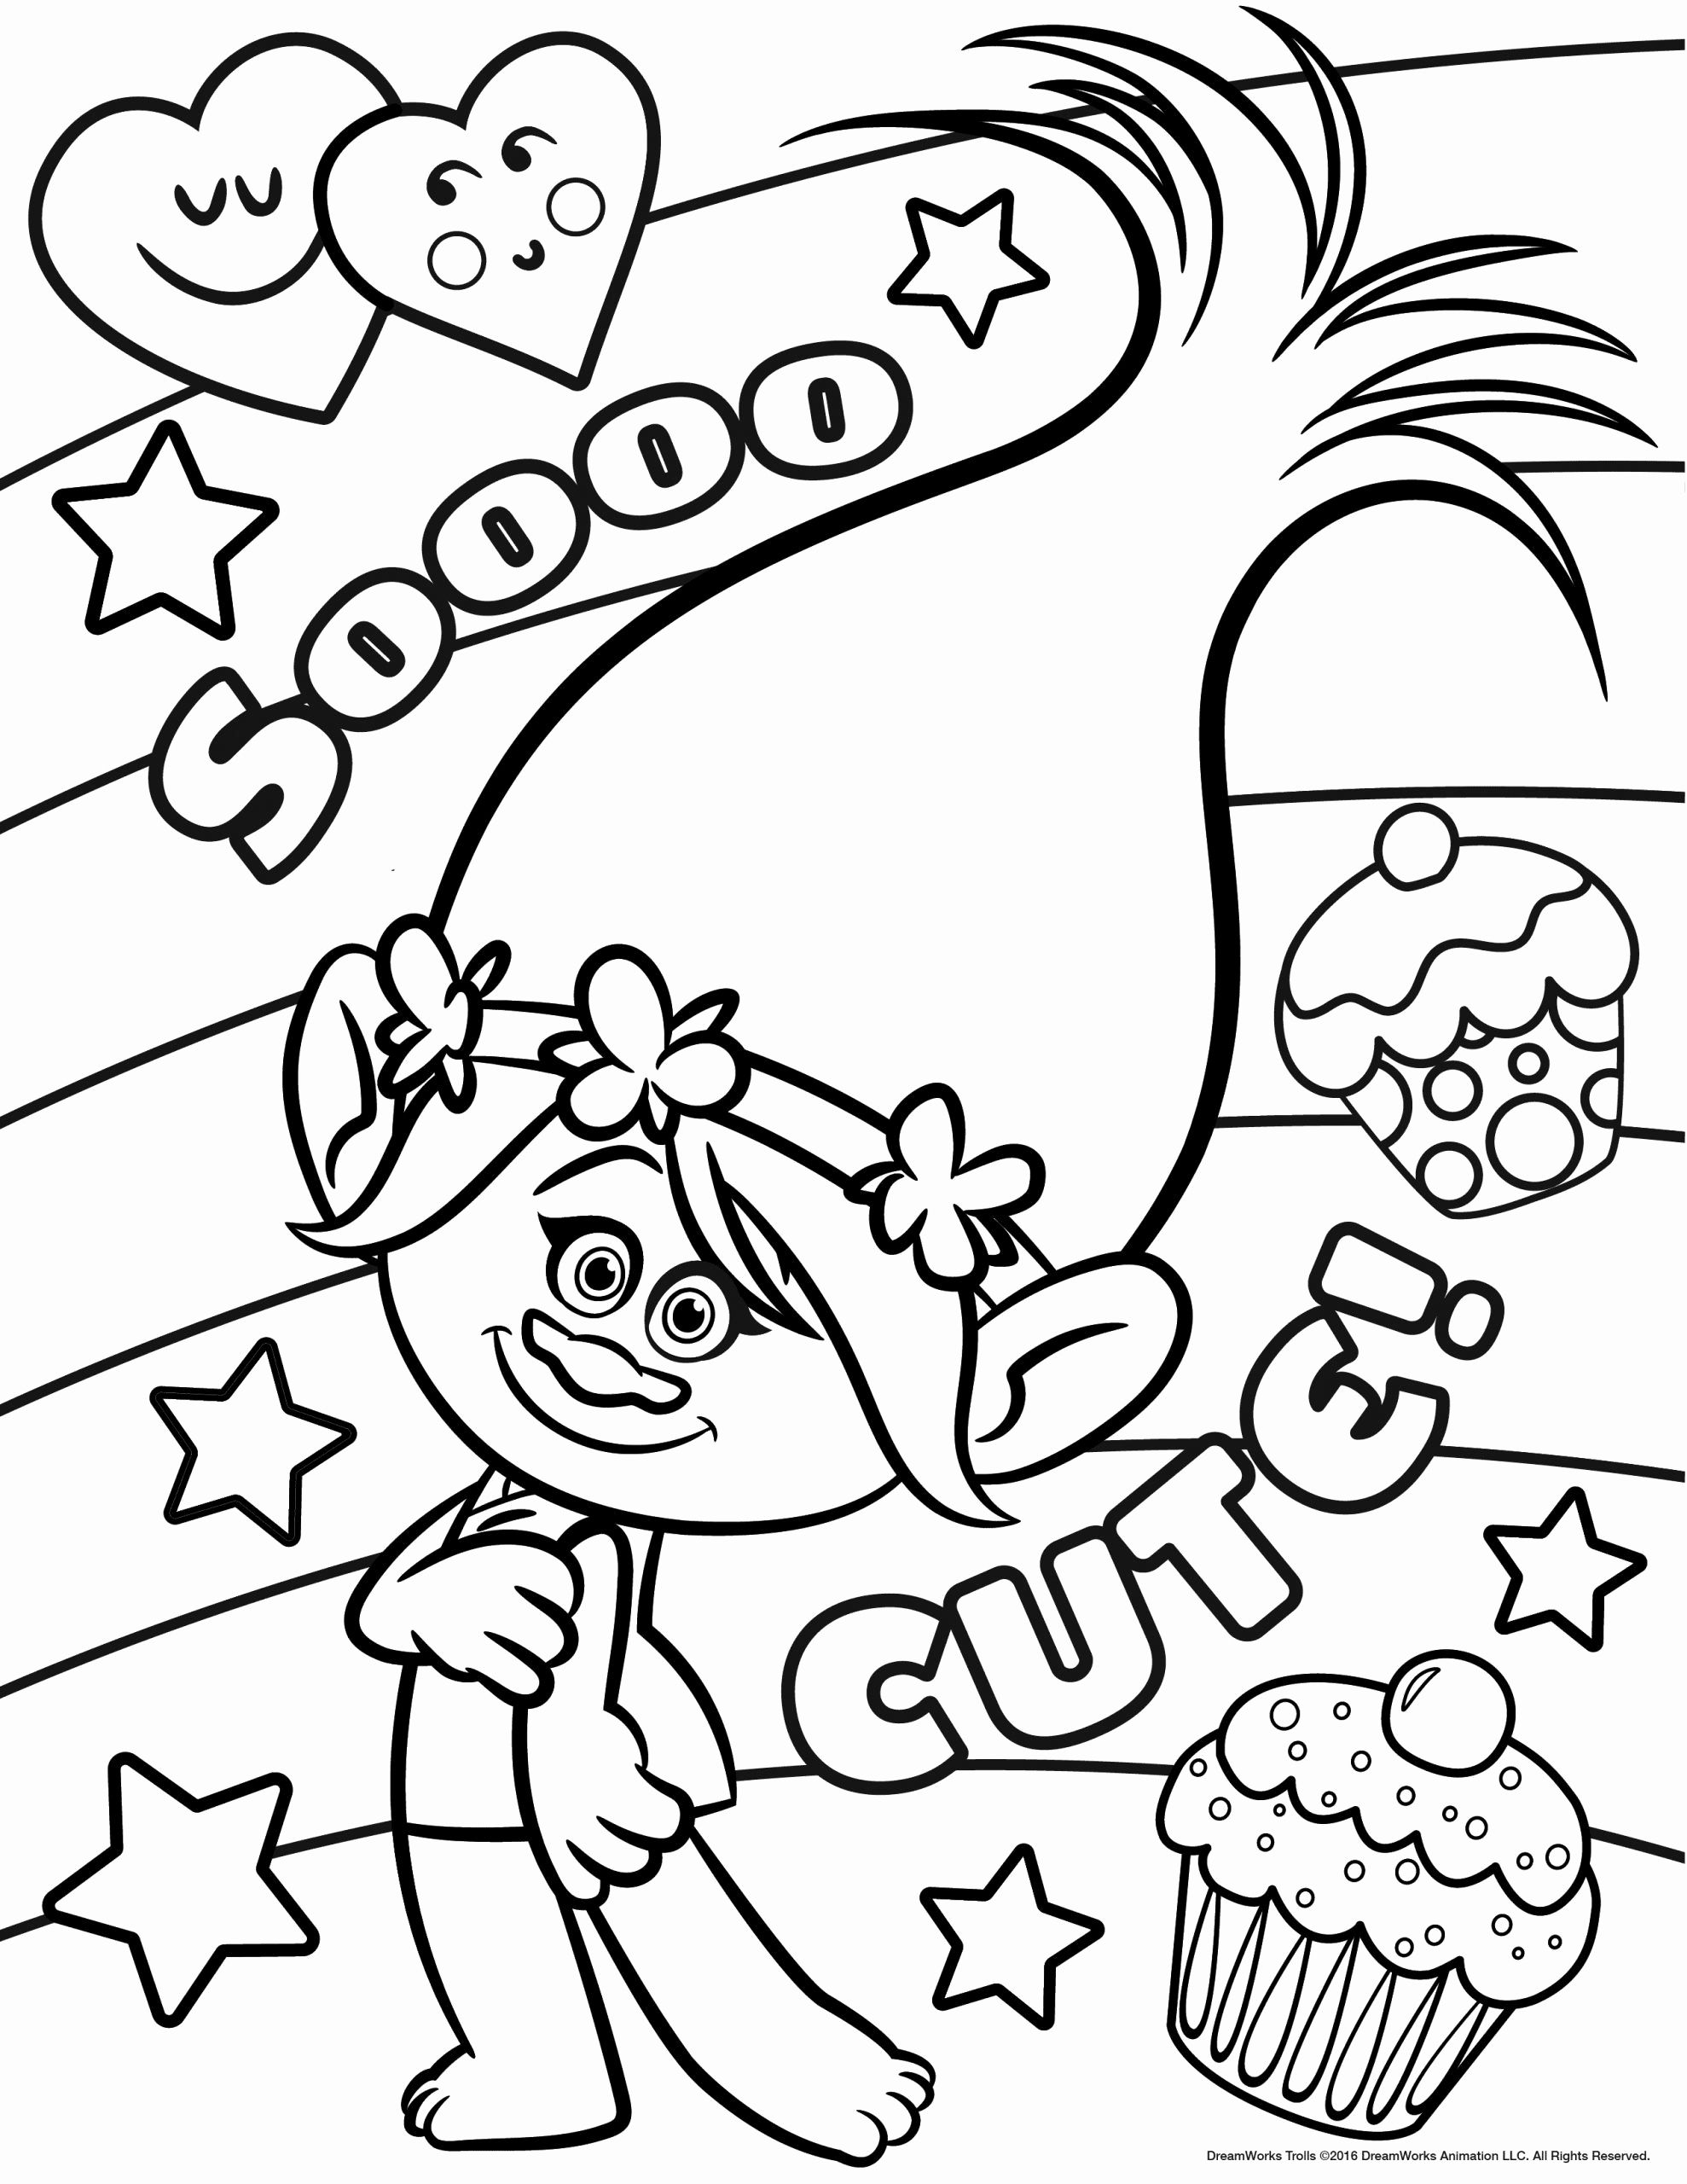 Free Disney Coloring Pages Kids In 2020 Poppy Coloring Page Disney Coloring Pages Tinkerbell Coloring Pages